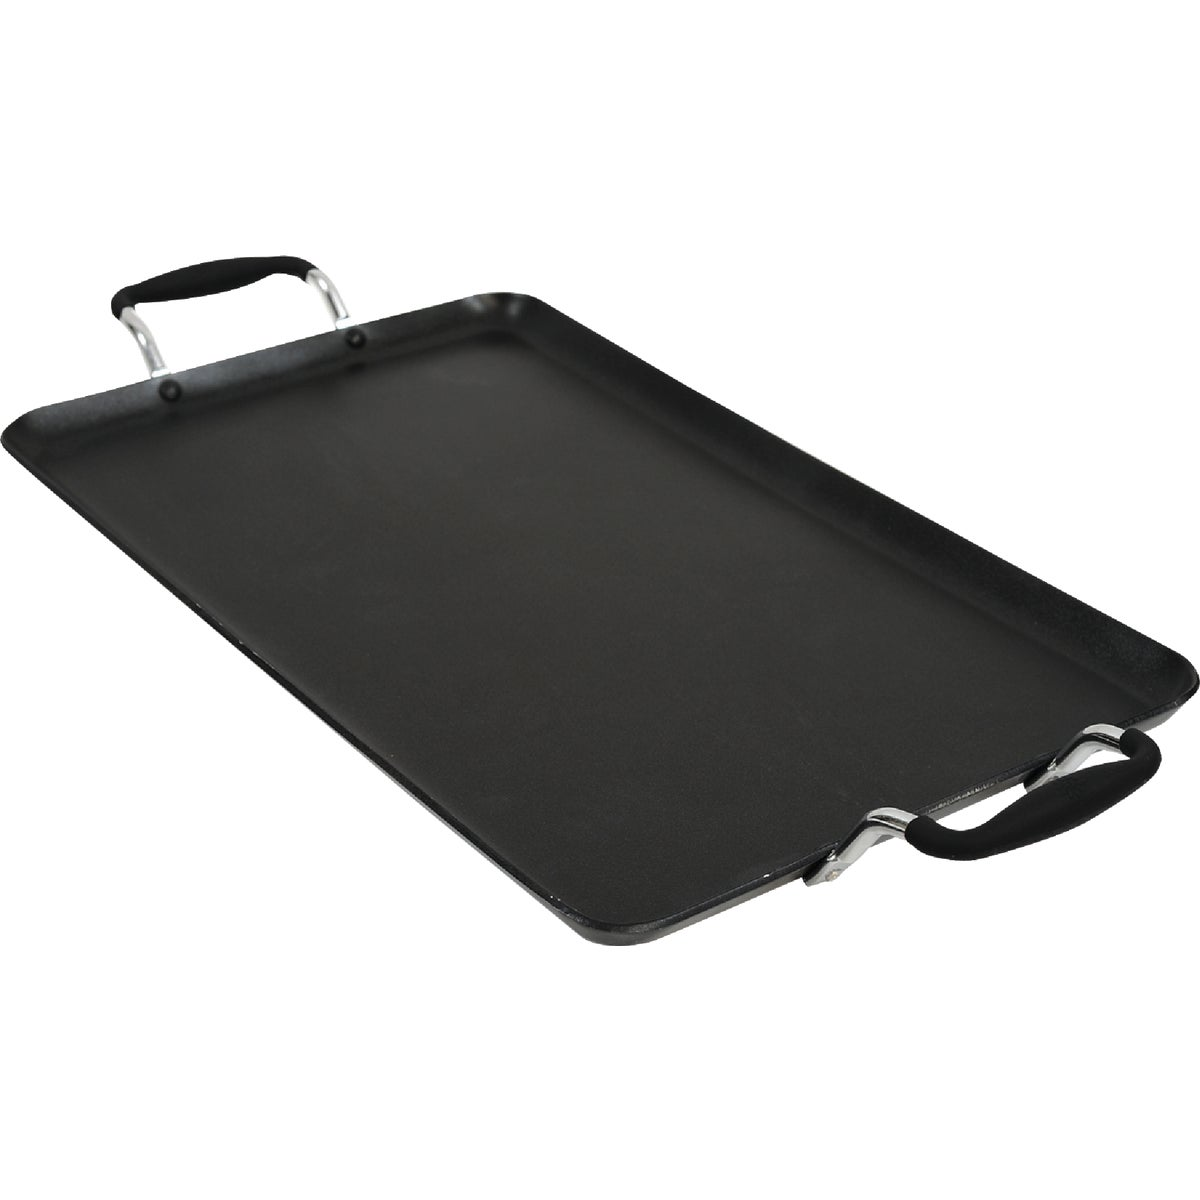 12X18 2-BURNER GRIDDLE - EABK-3218 by Epoca Inc